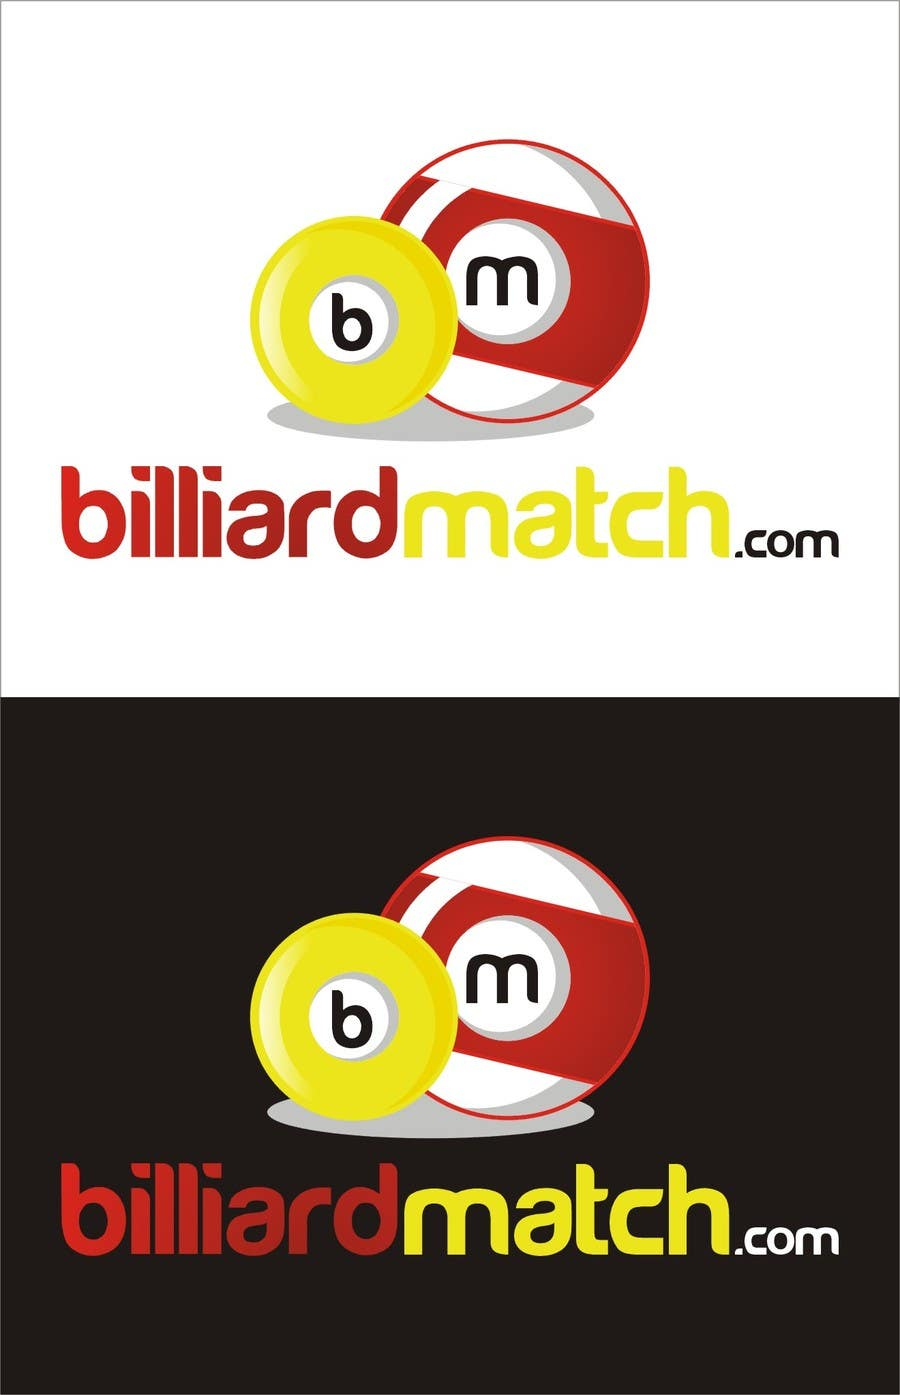 Kilpailutyö #7 kilpailussa Design a Logo for a billiard tournament & score-keeping website.